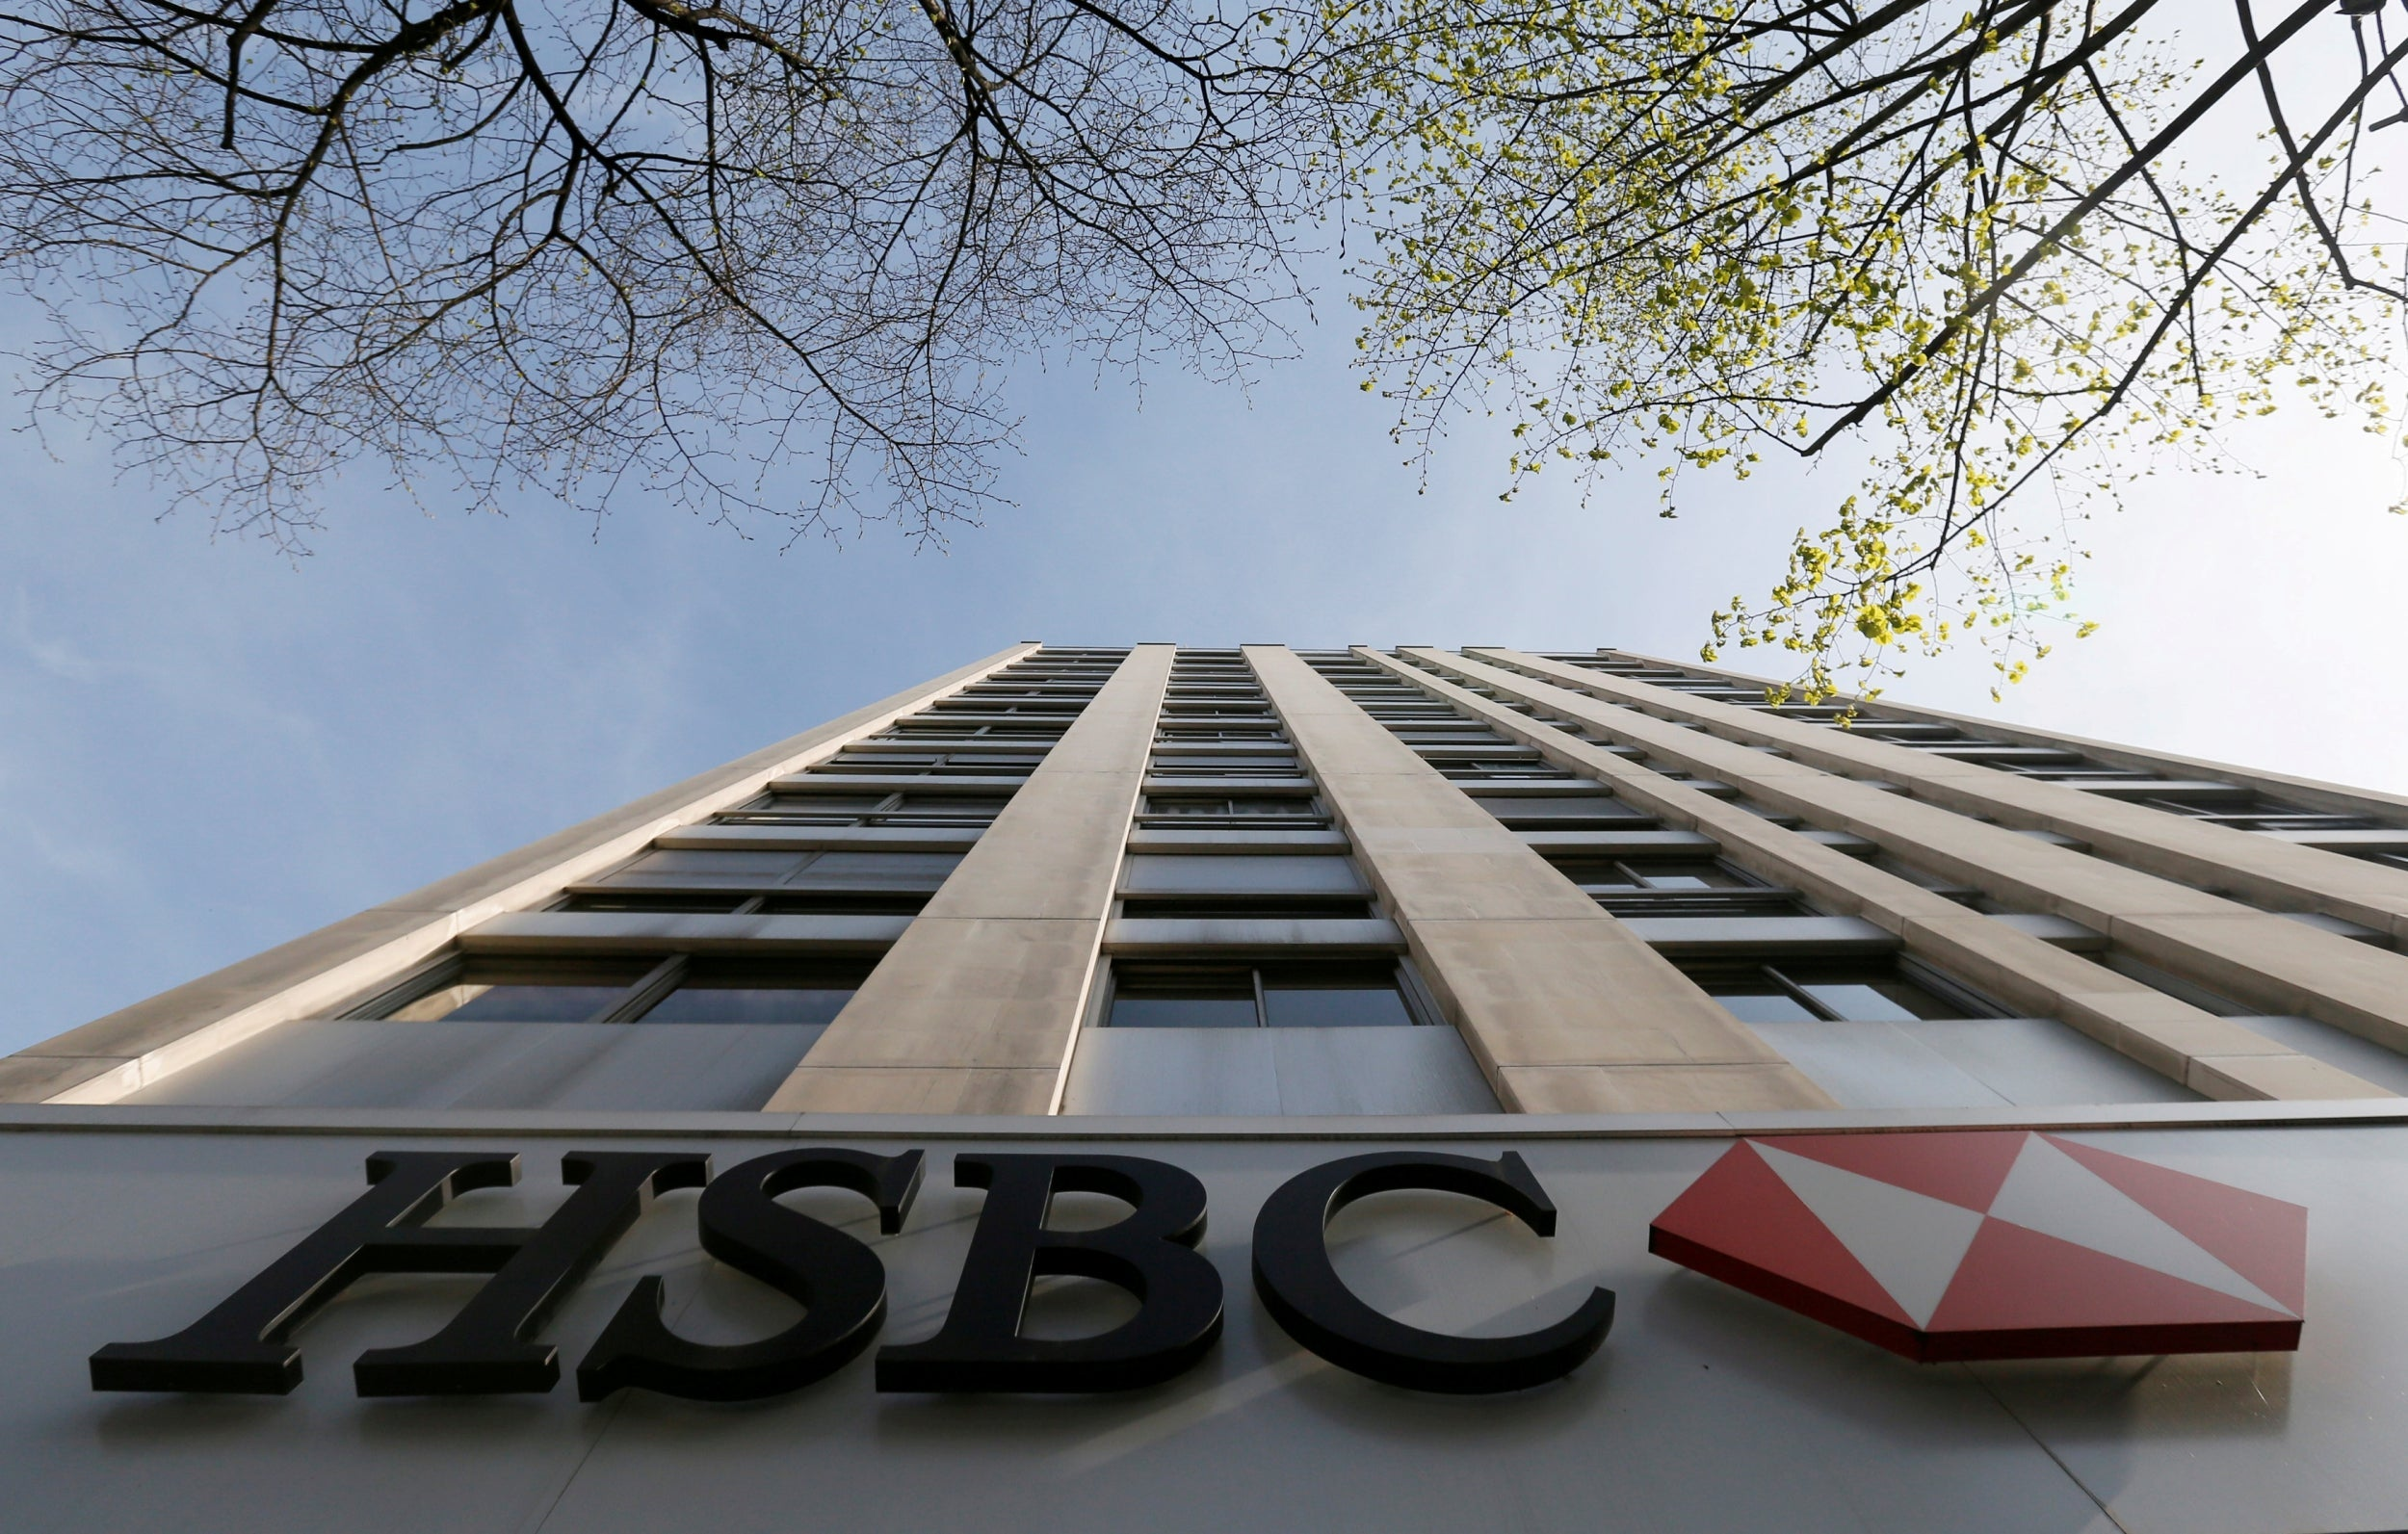 HSBC to introduce 40% overdraft interest rate, quadrupling costs for some customers